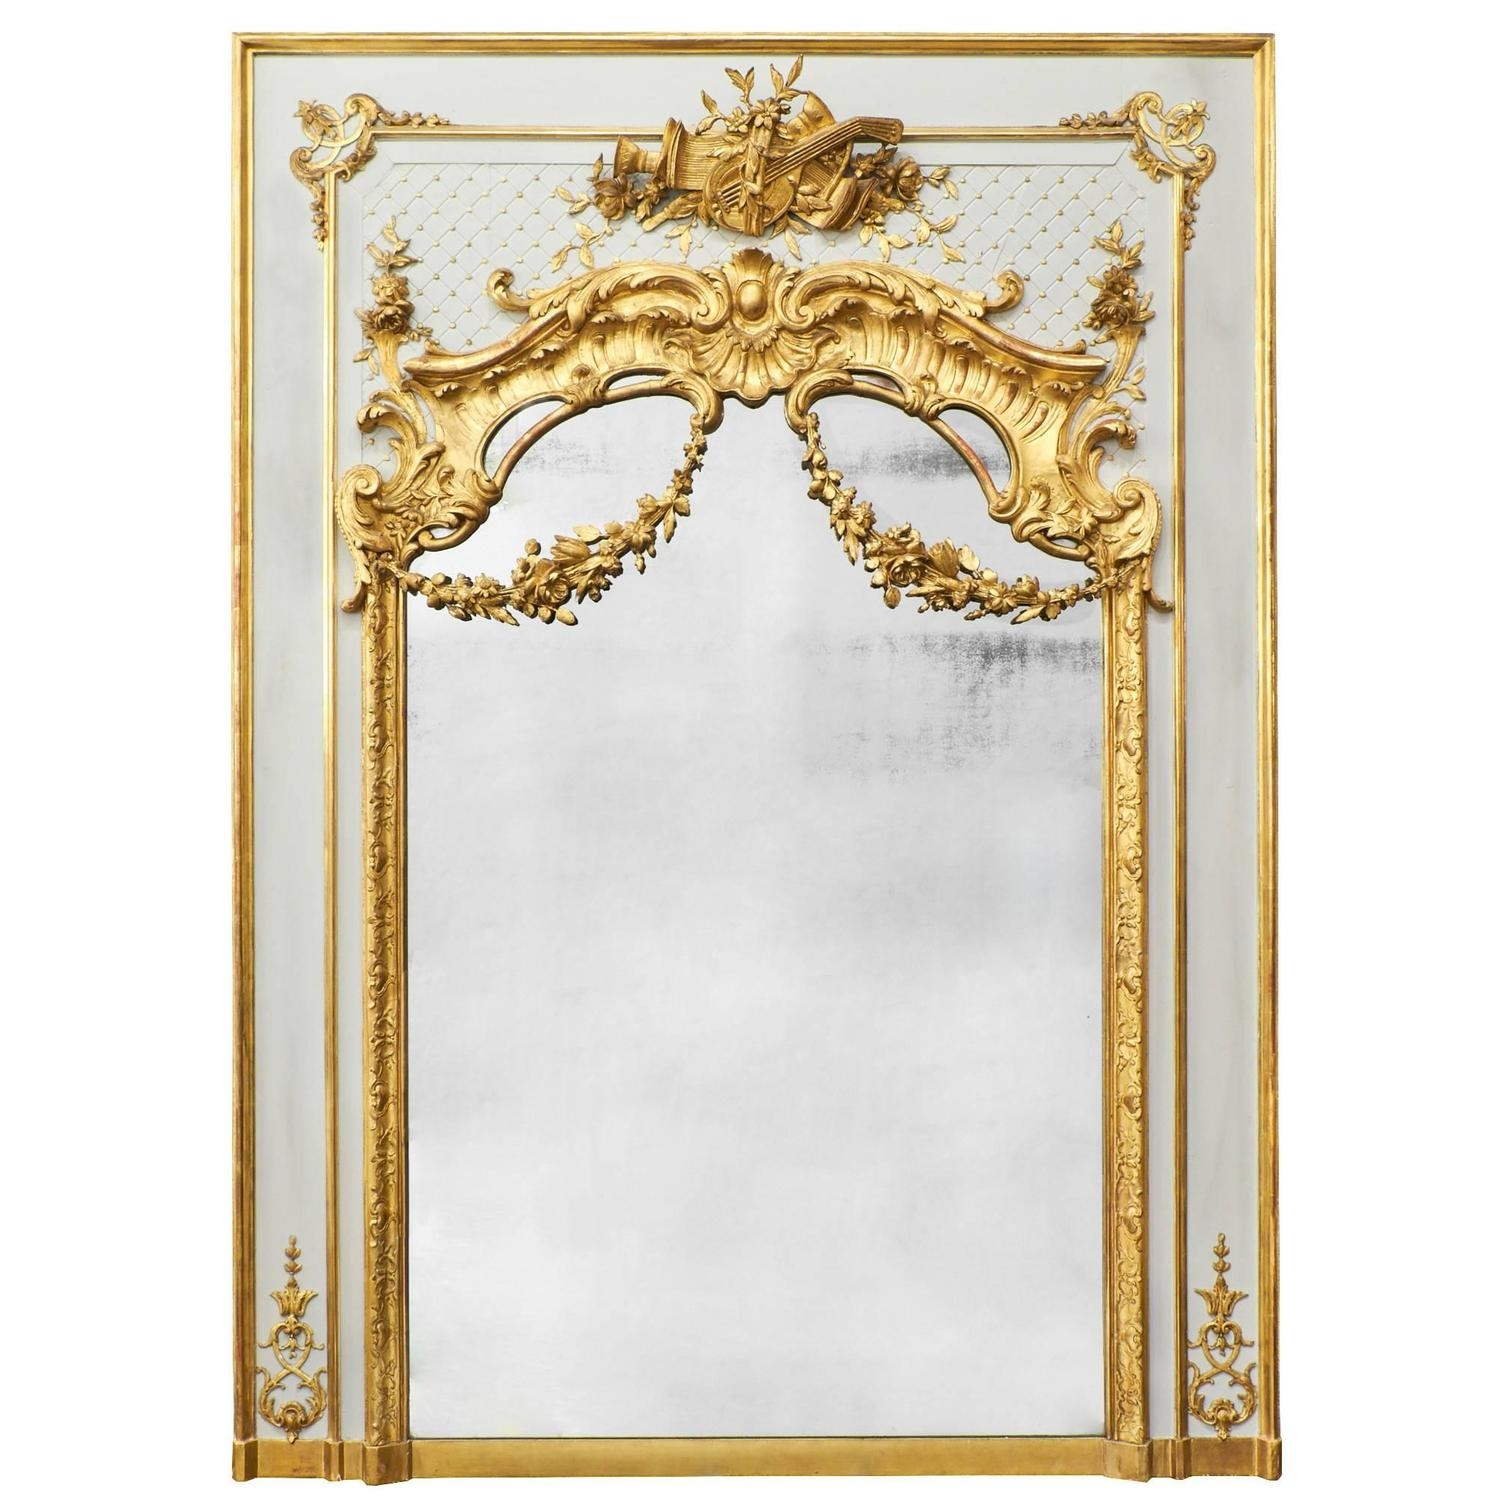 Antique French Louis Xvi Gold Leaf Trumeau For Sale At 1stdibs Within Gold French Mirror (Image 2 of 15)